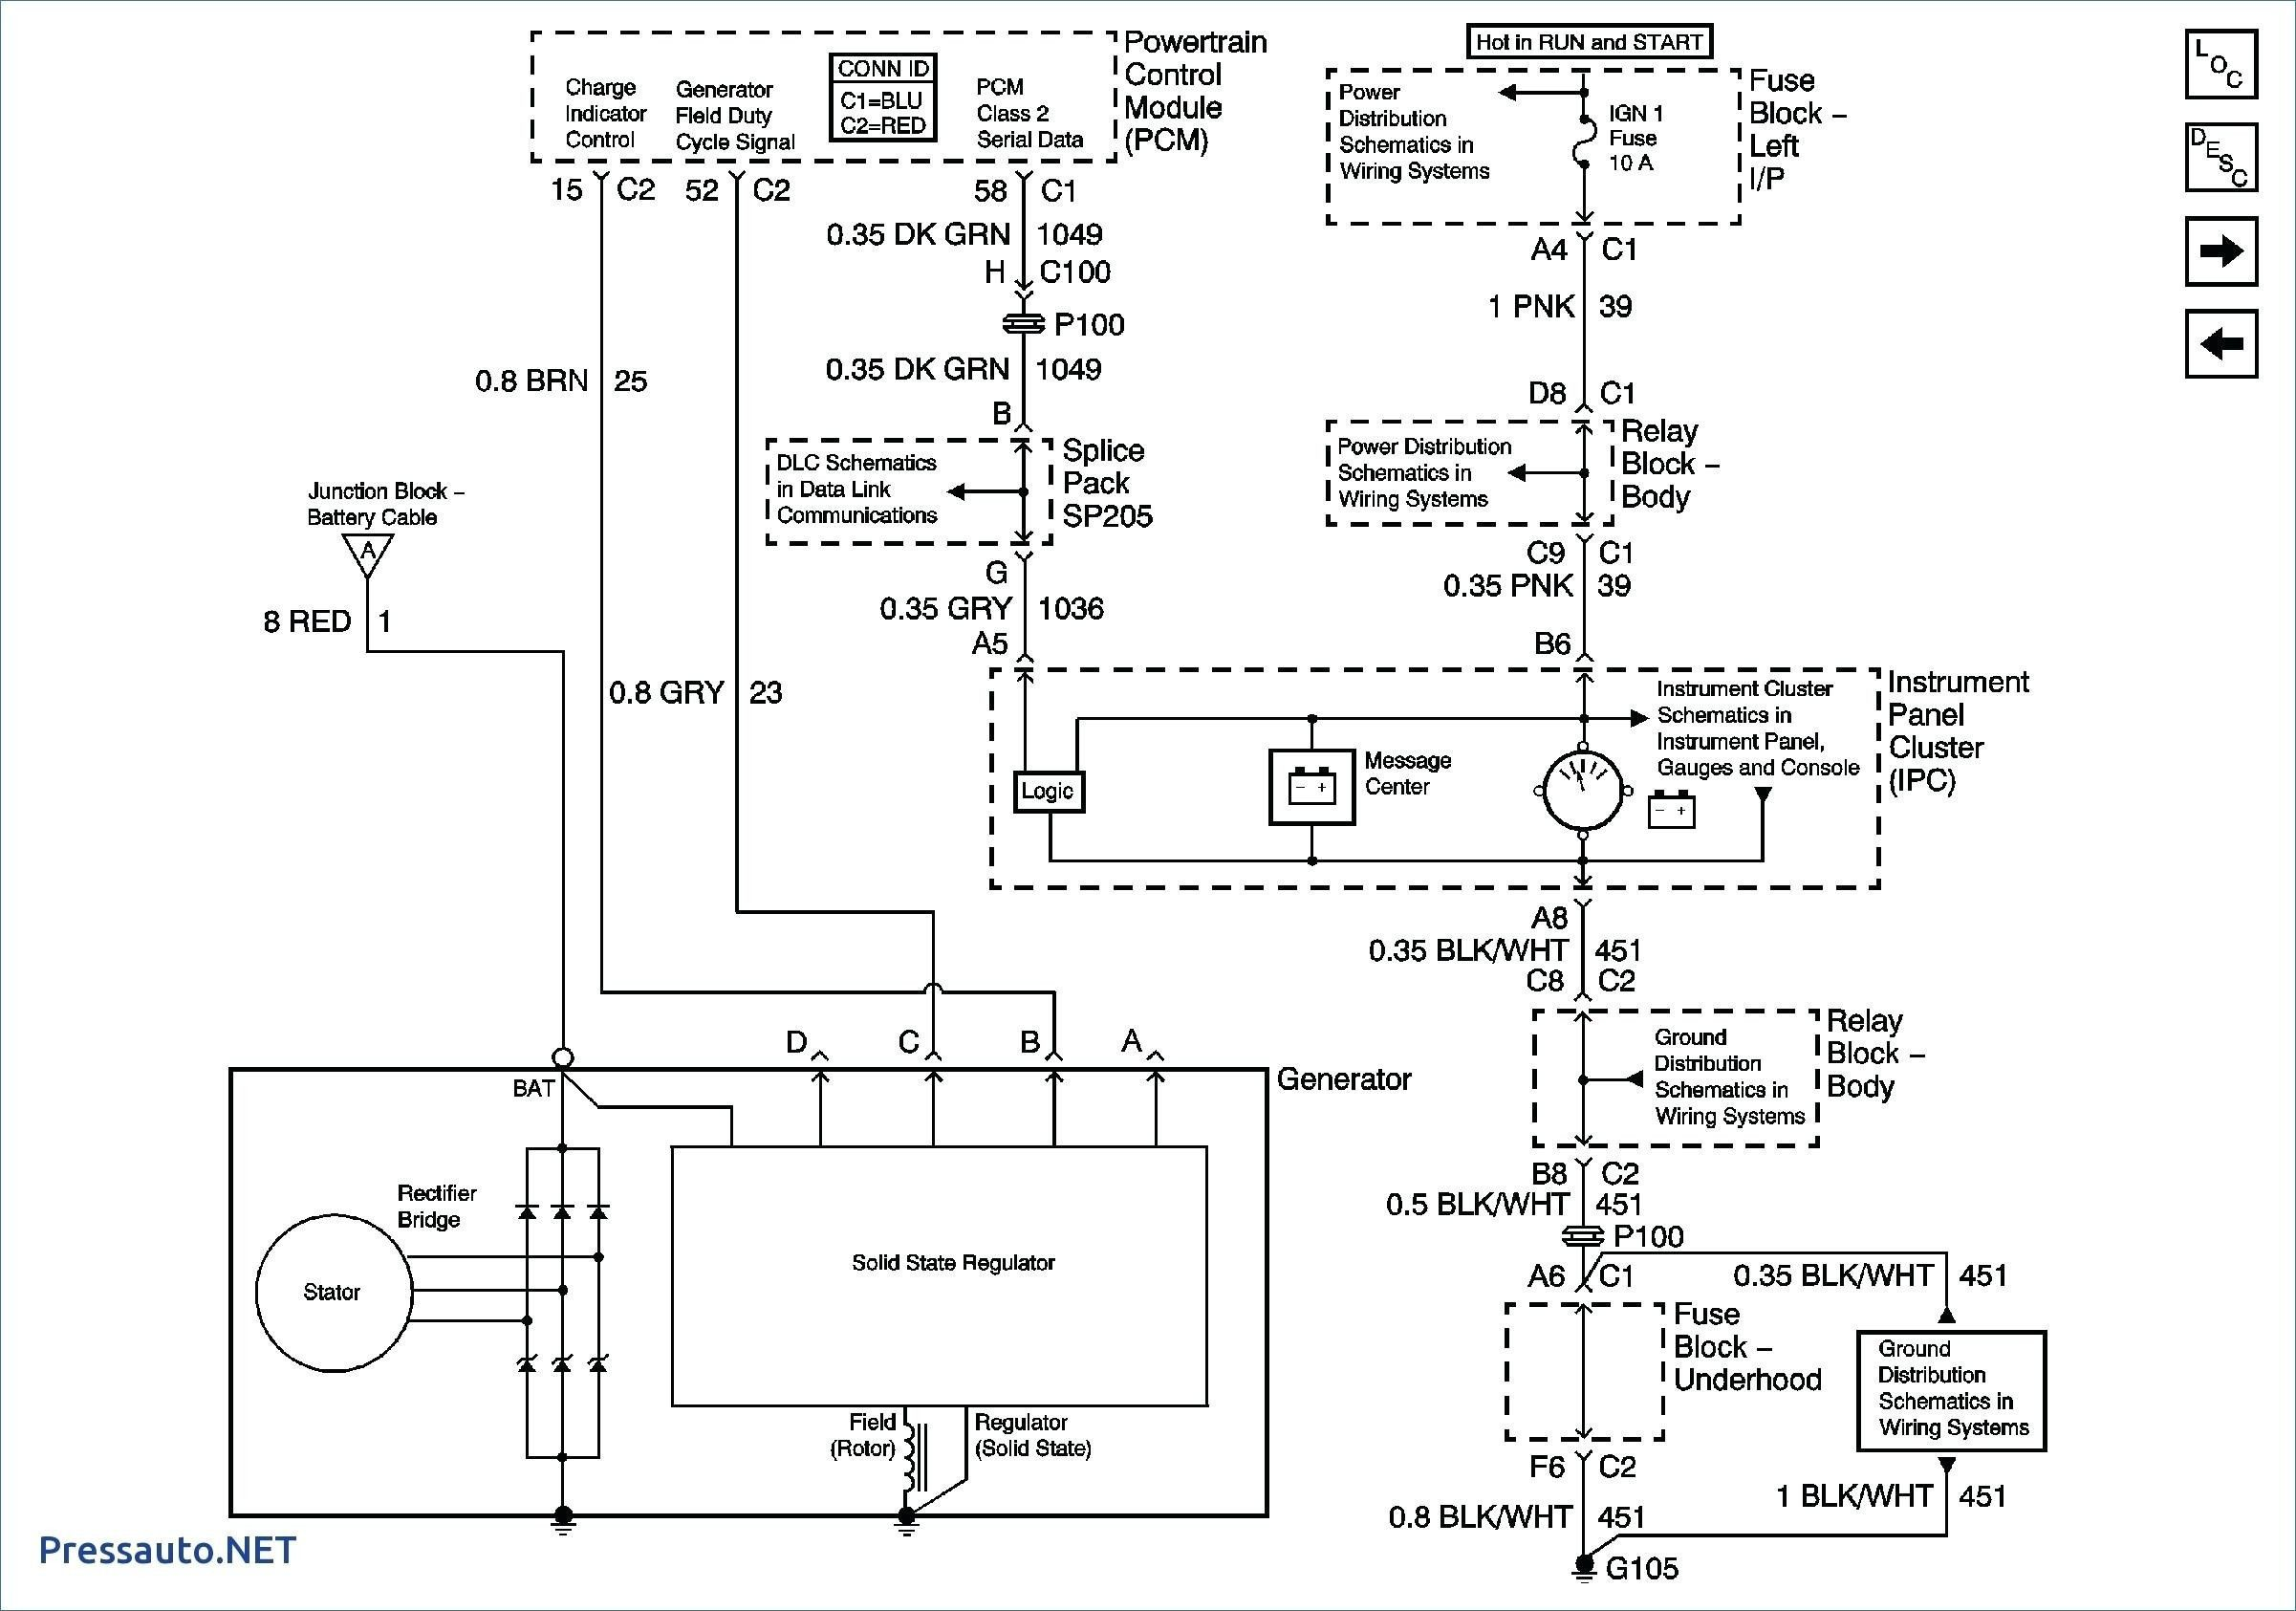 New Wiring Diagram For A Bosch Alternator Diagrams Digramssample Diagramimages Wiringdiagramsample Wiringdiag Electrical Wiring Diagram Diagram Alternator